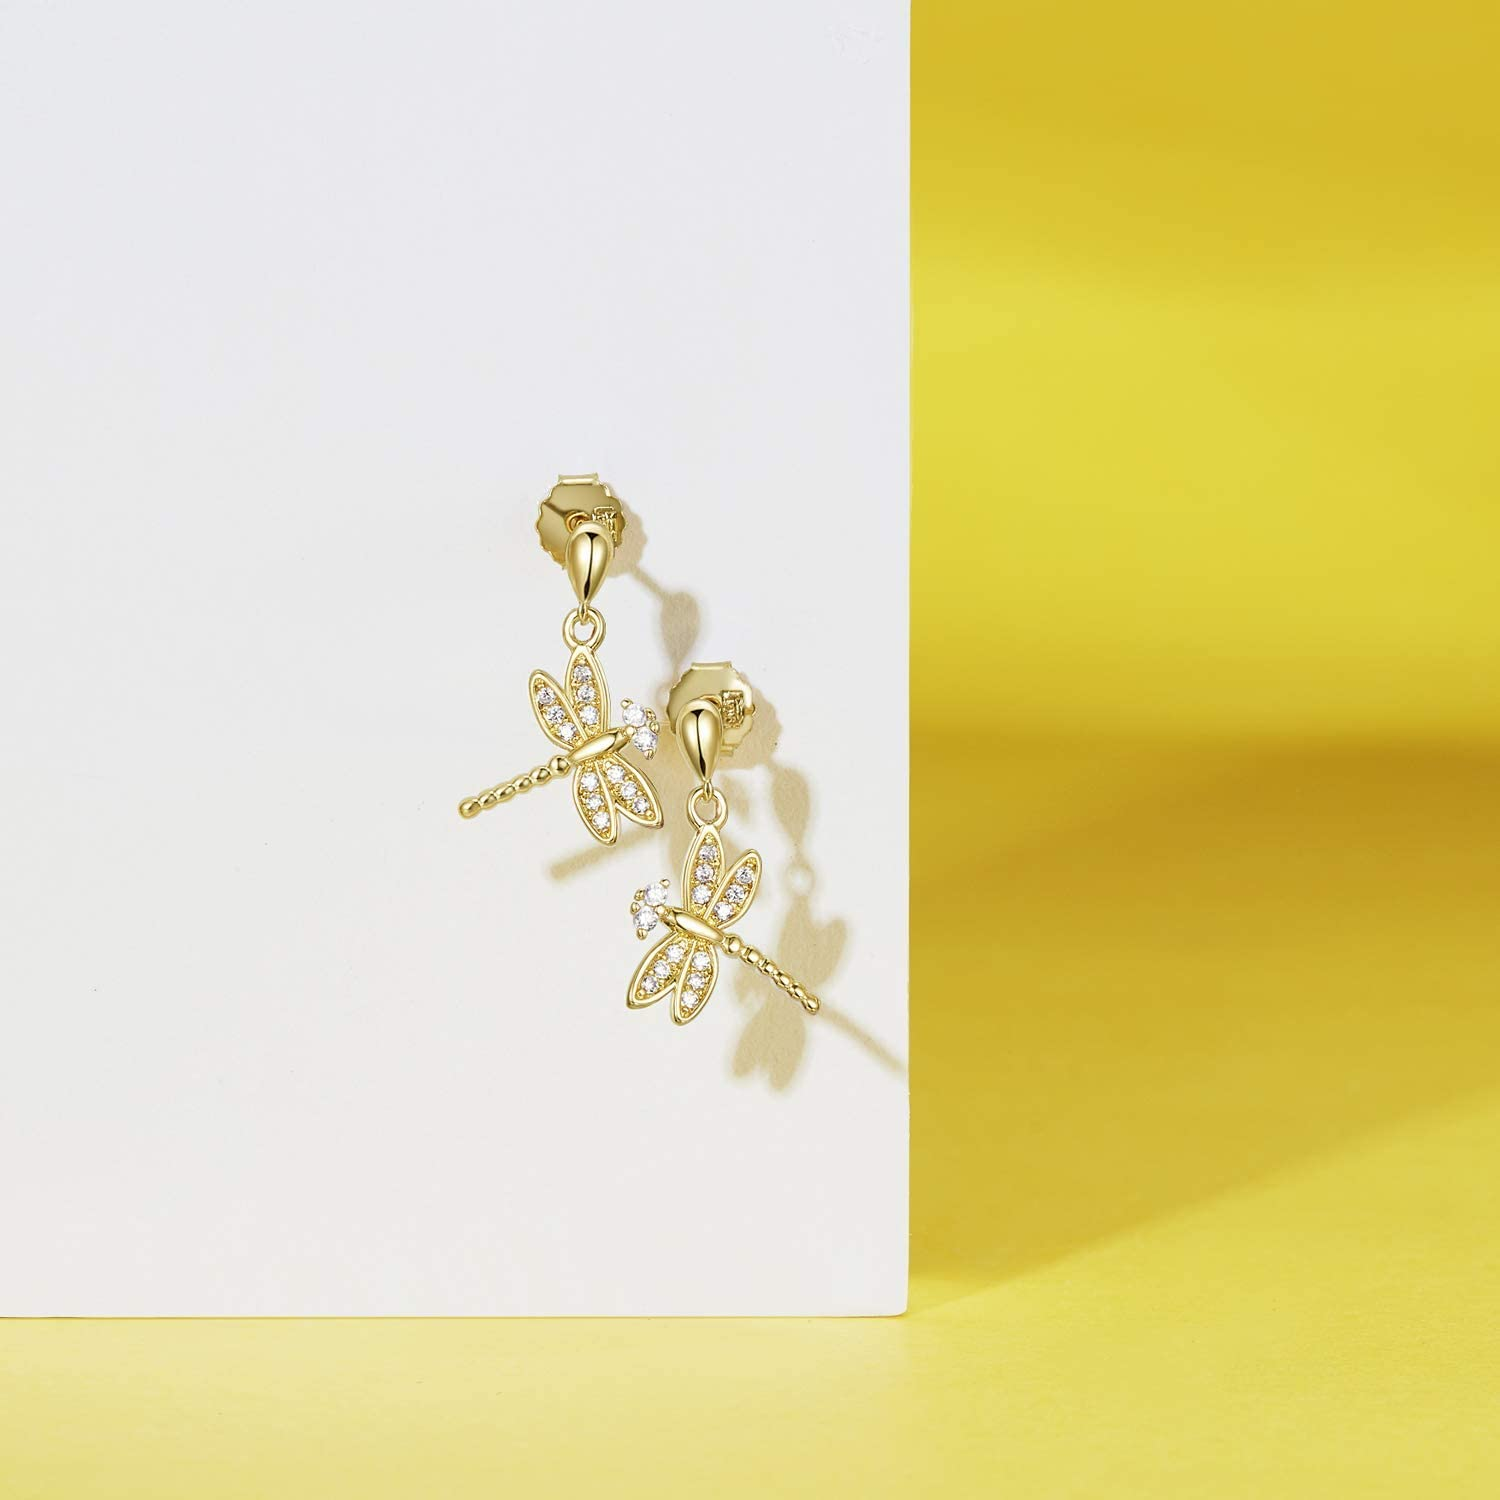 Agvana Sterling Silver Gold Cubic Zirconia Dragonfly Dangle Earrings Bracelet Pendant Necklace Anniversary Birthday Christmas Gifts Jewelry for Women Girls Mom Grandma Wife Girlfriend Daughter Her